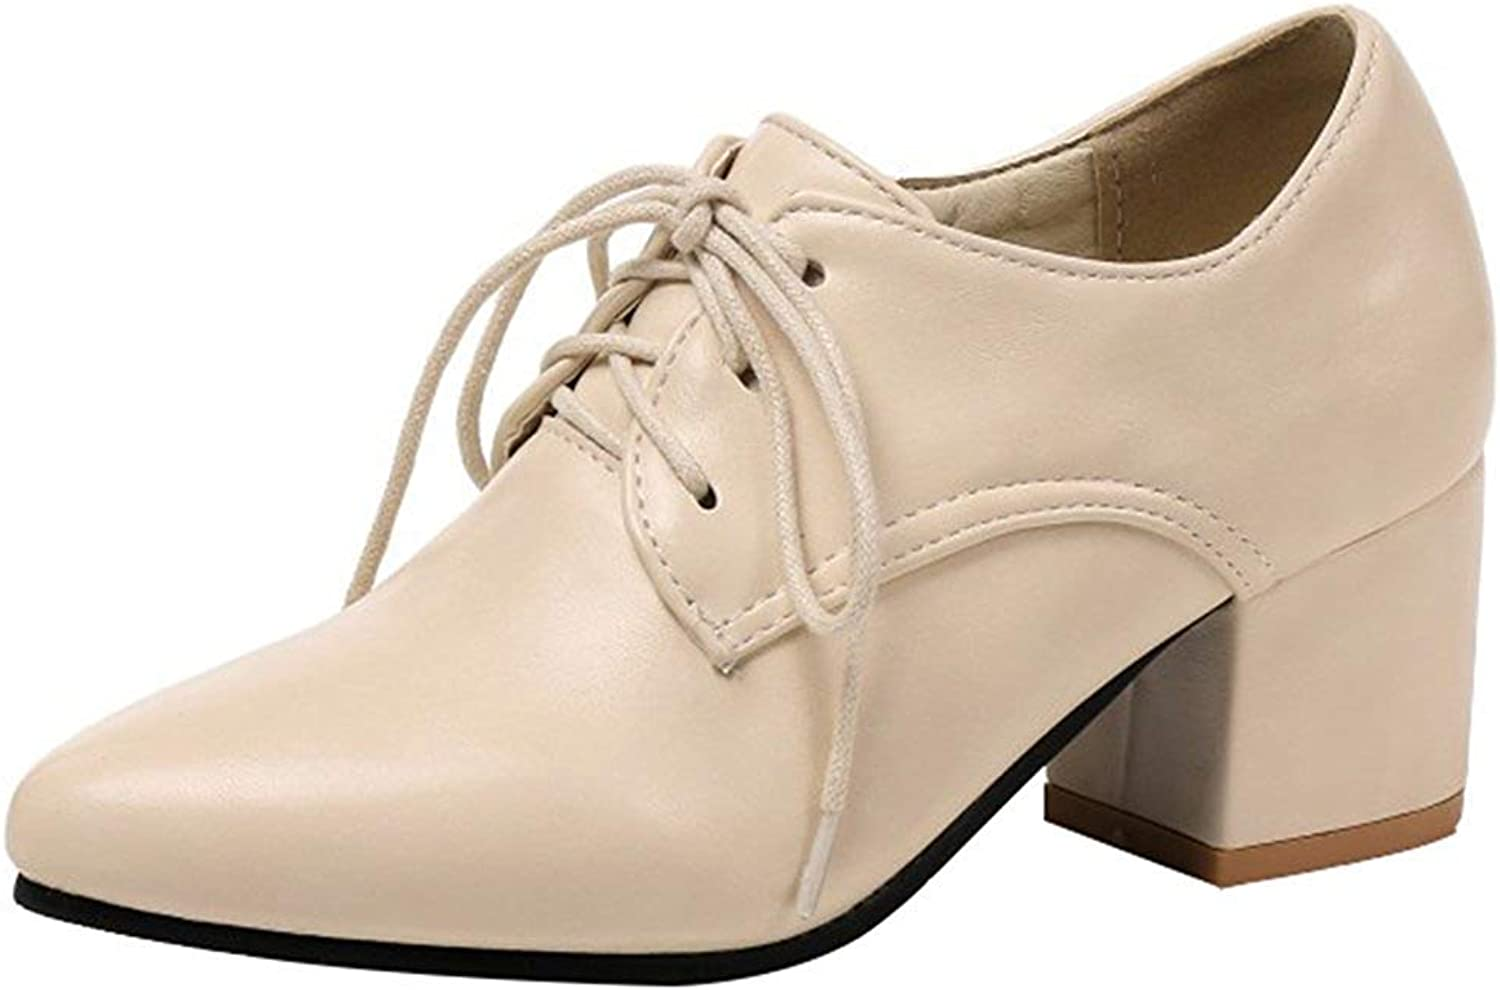 Ghapwe Women's Stylish Pointed Toe Low Top Block Medium Heels Lace Up Pumps shoes Beige 5.5 M US